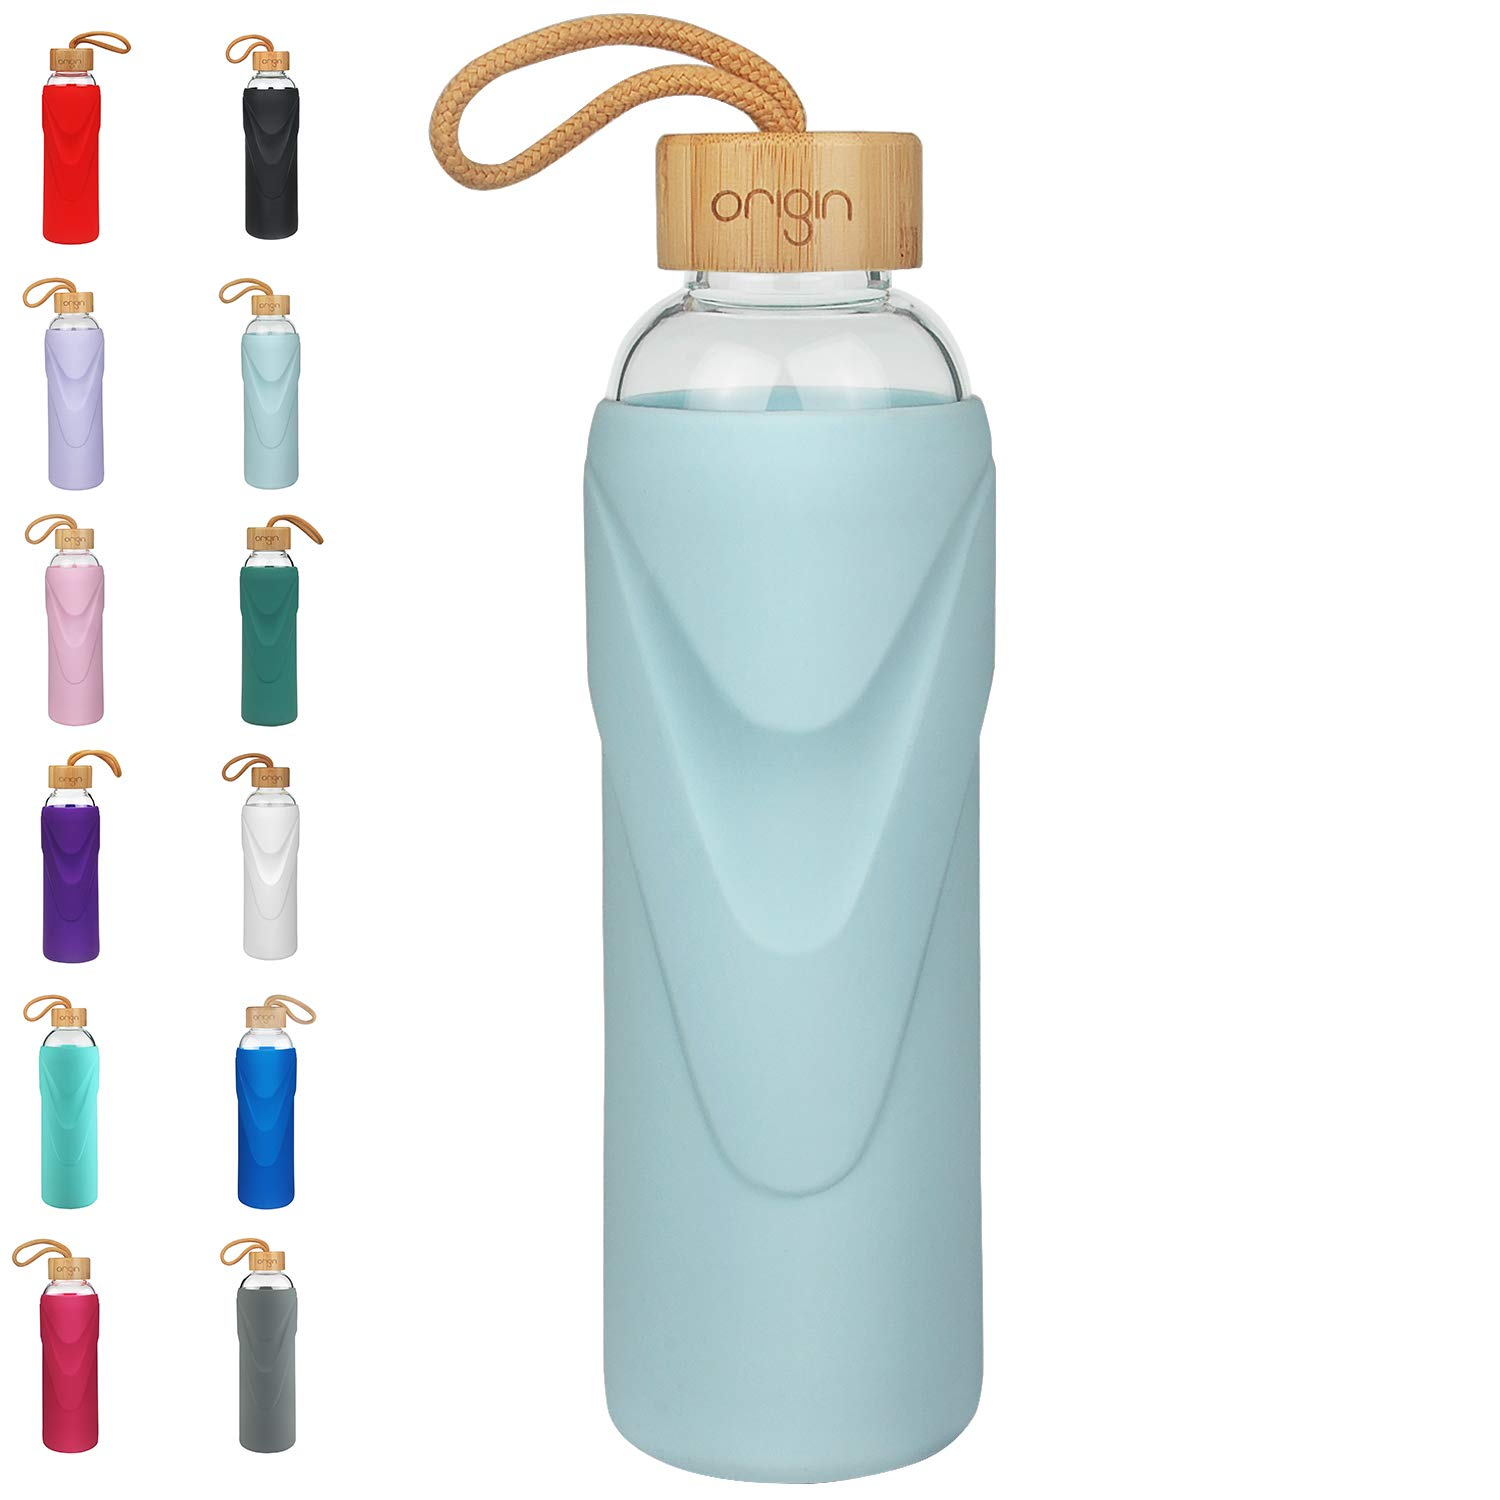 ORIGIN Best BPA-Free Borosilicate Glass Water Bottle with Protective Silicone Sleeve and Bamboo Lid - Dishwasher Safe Origin Glass Co.